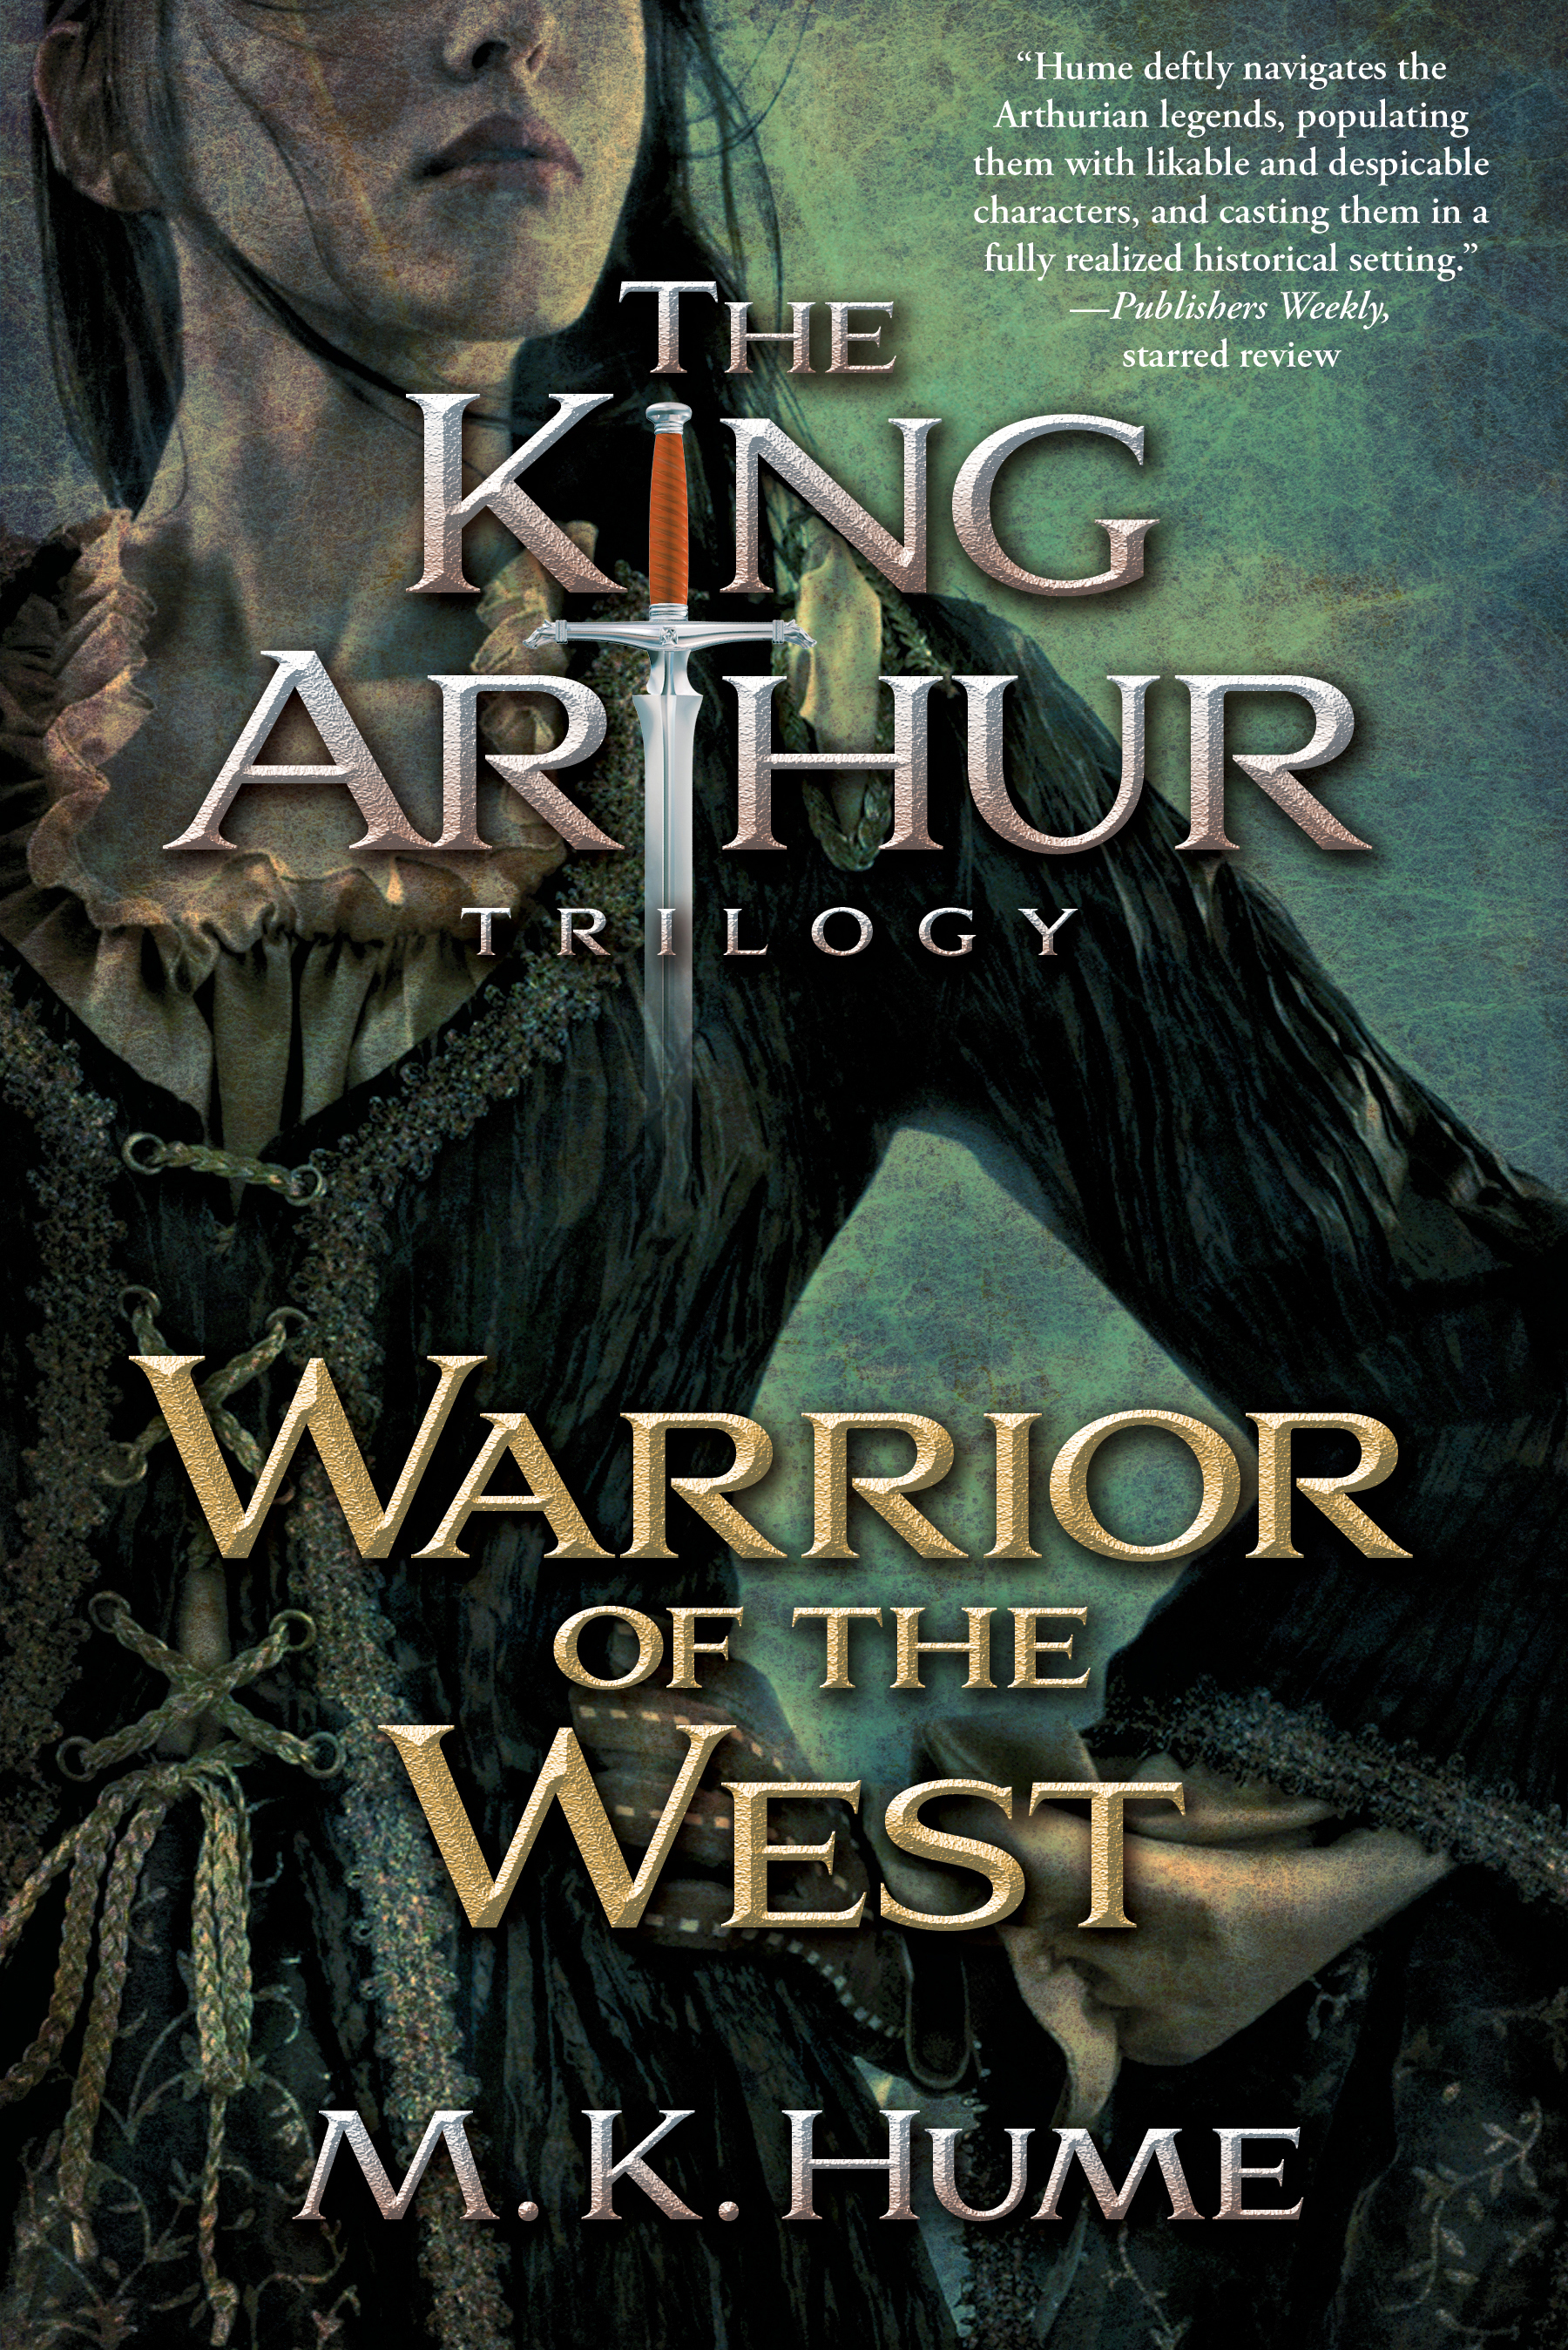 King-arthur-trilogy-book-two-warrior-of-the-west-9781476715209_hr